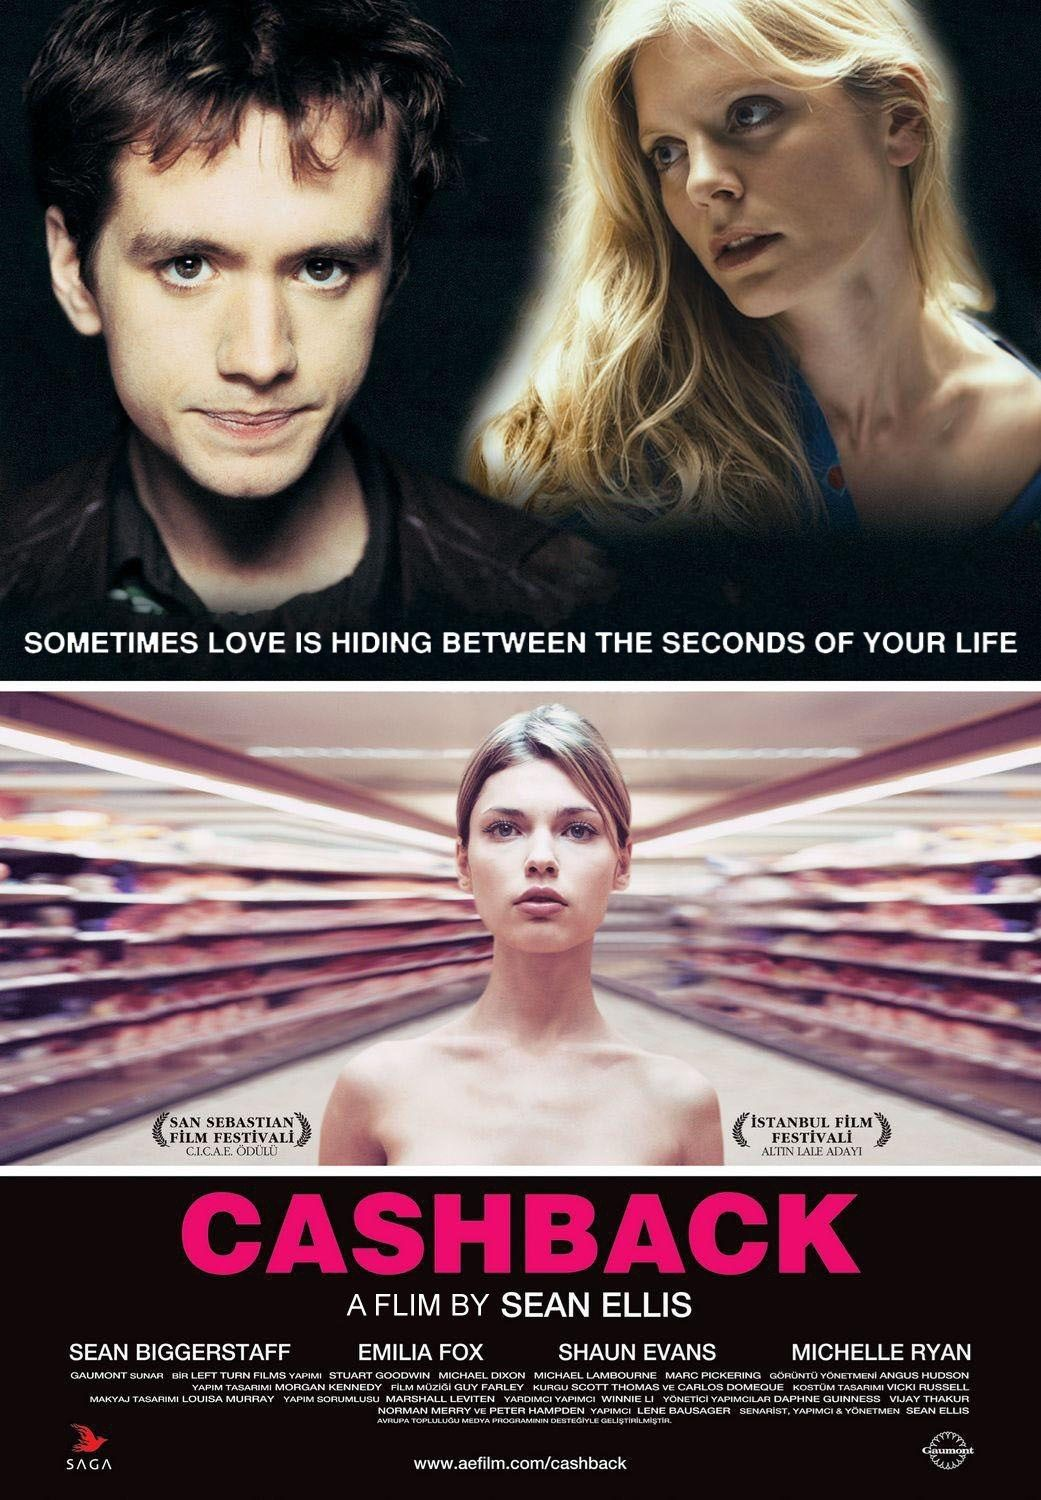 Cashback nine and a half percent for all AliExpress goods